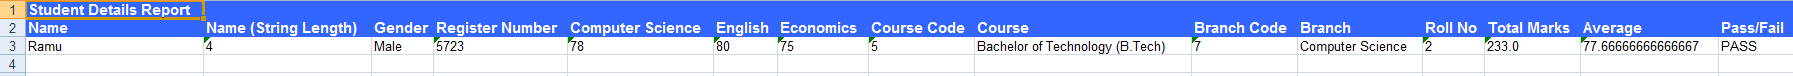 Sample Student Report (Excel)